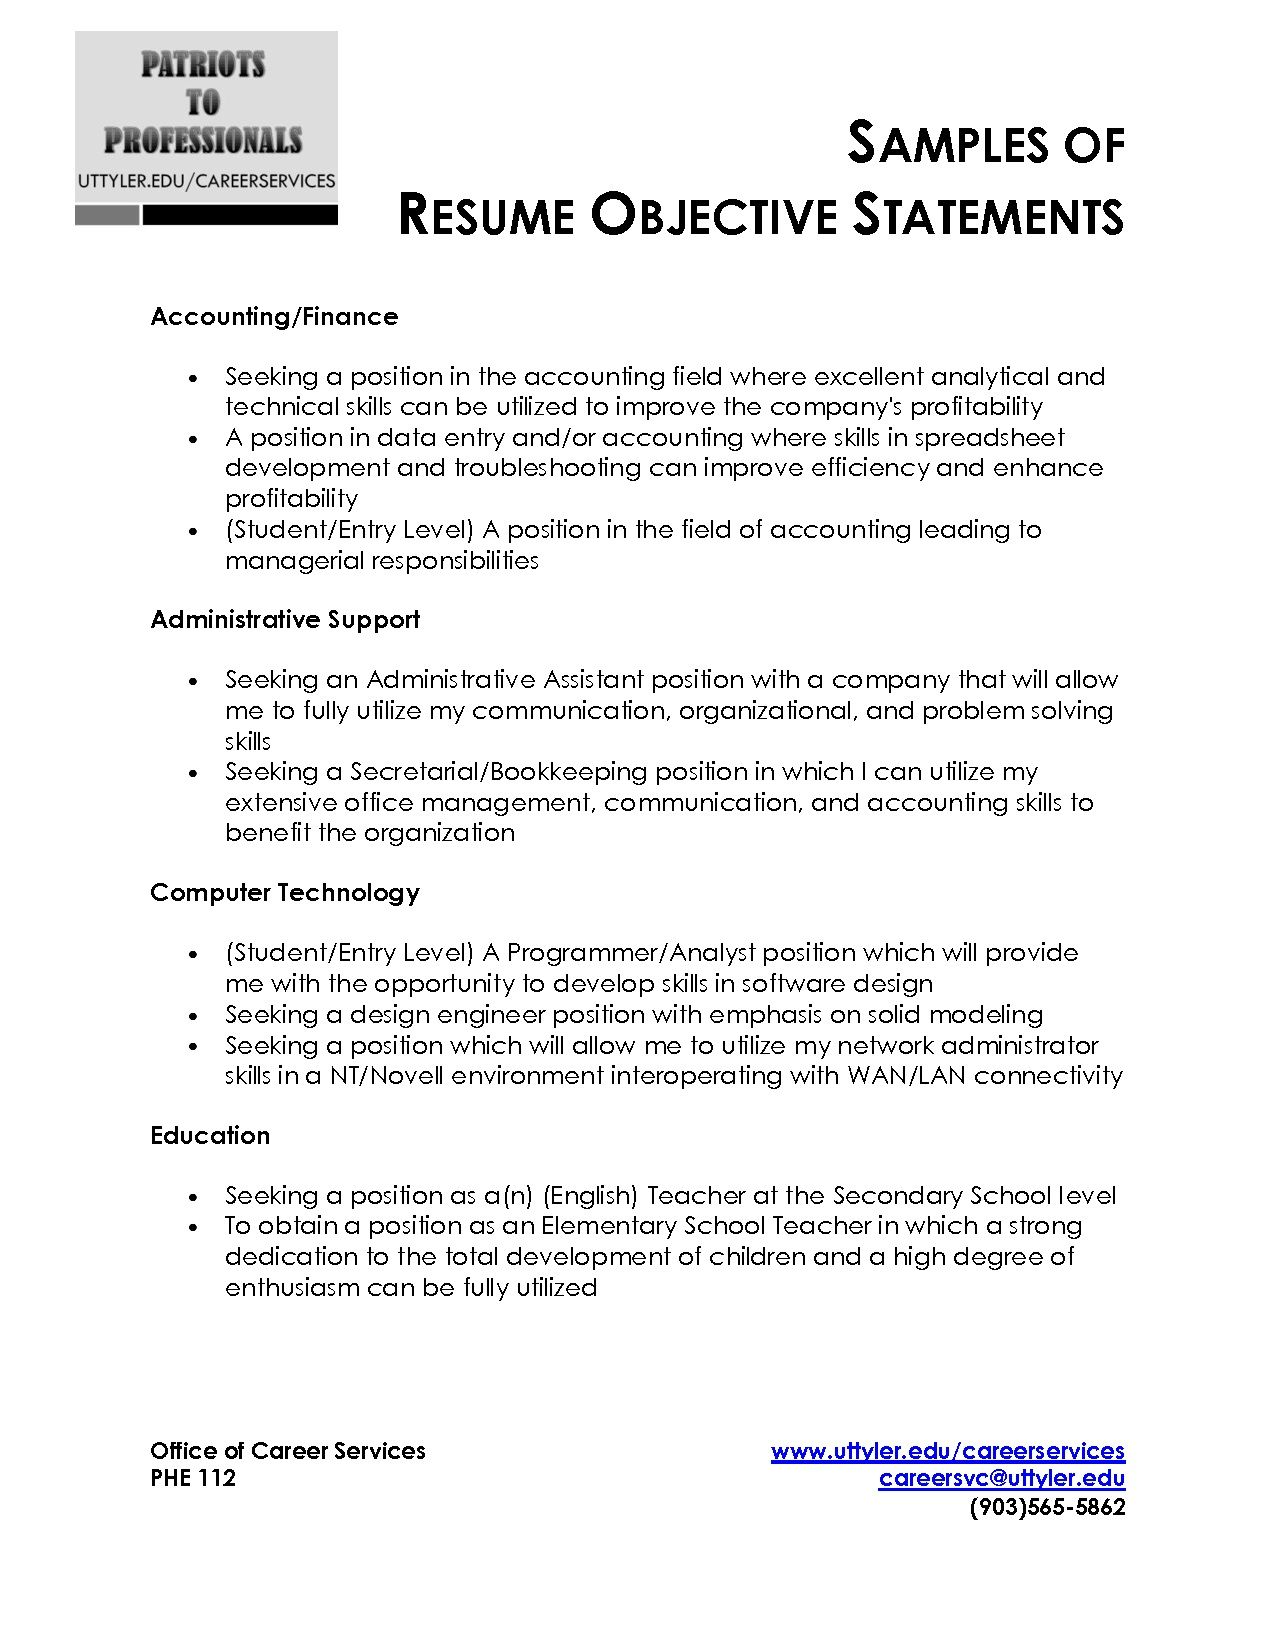 General Objective Statement Resume Pin By Rachel Franco On Resume Writing Sample Resume